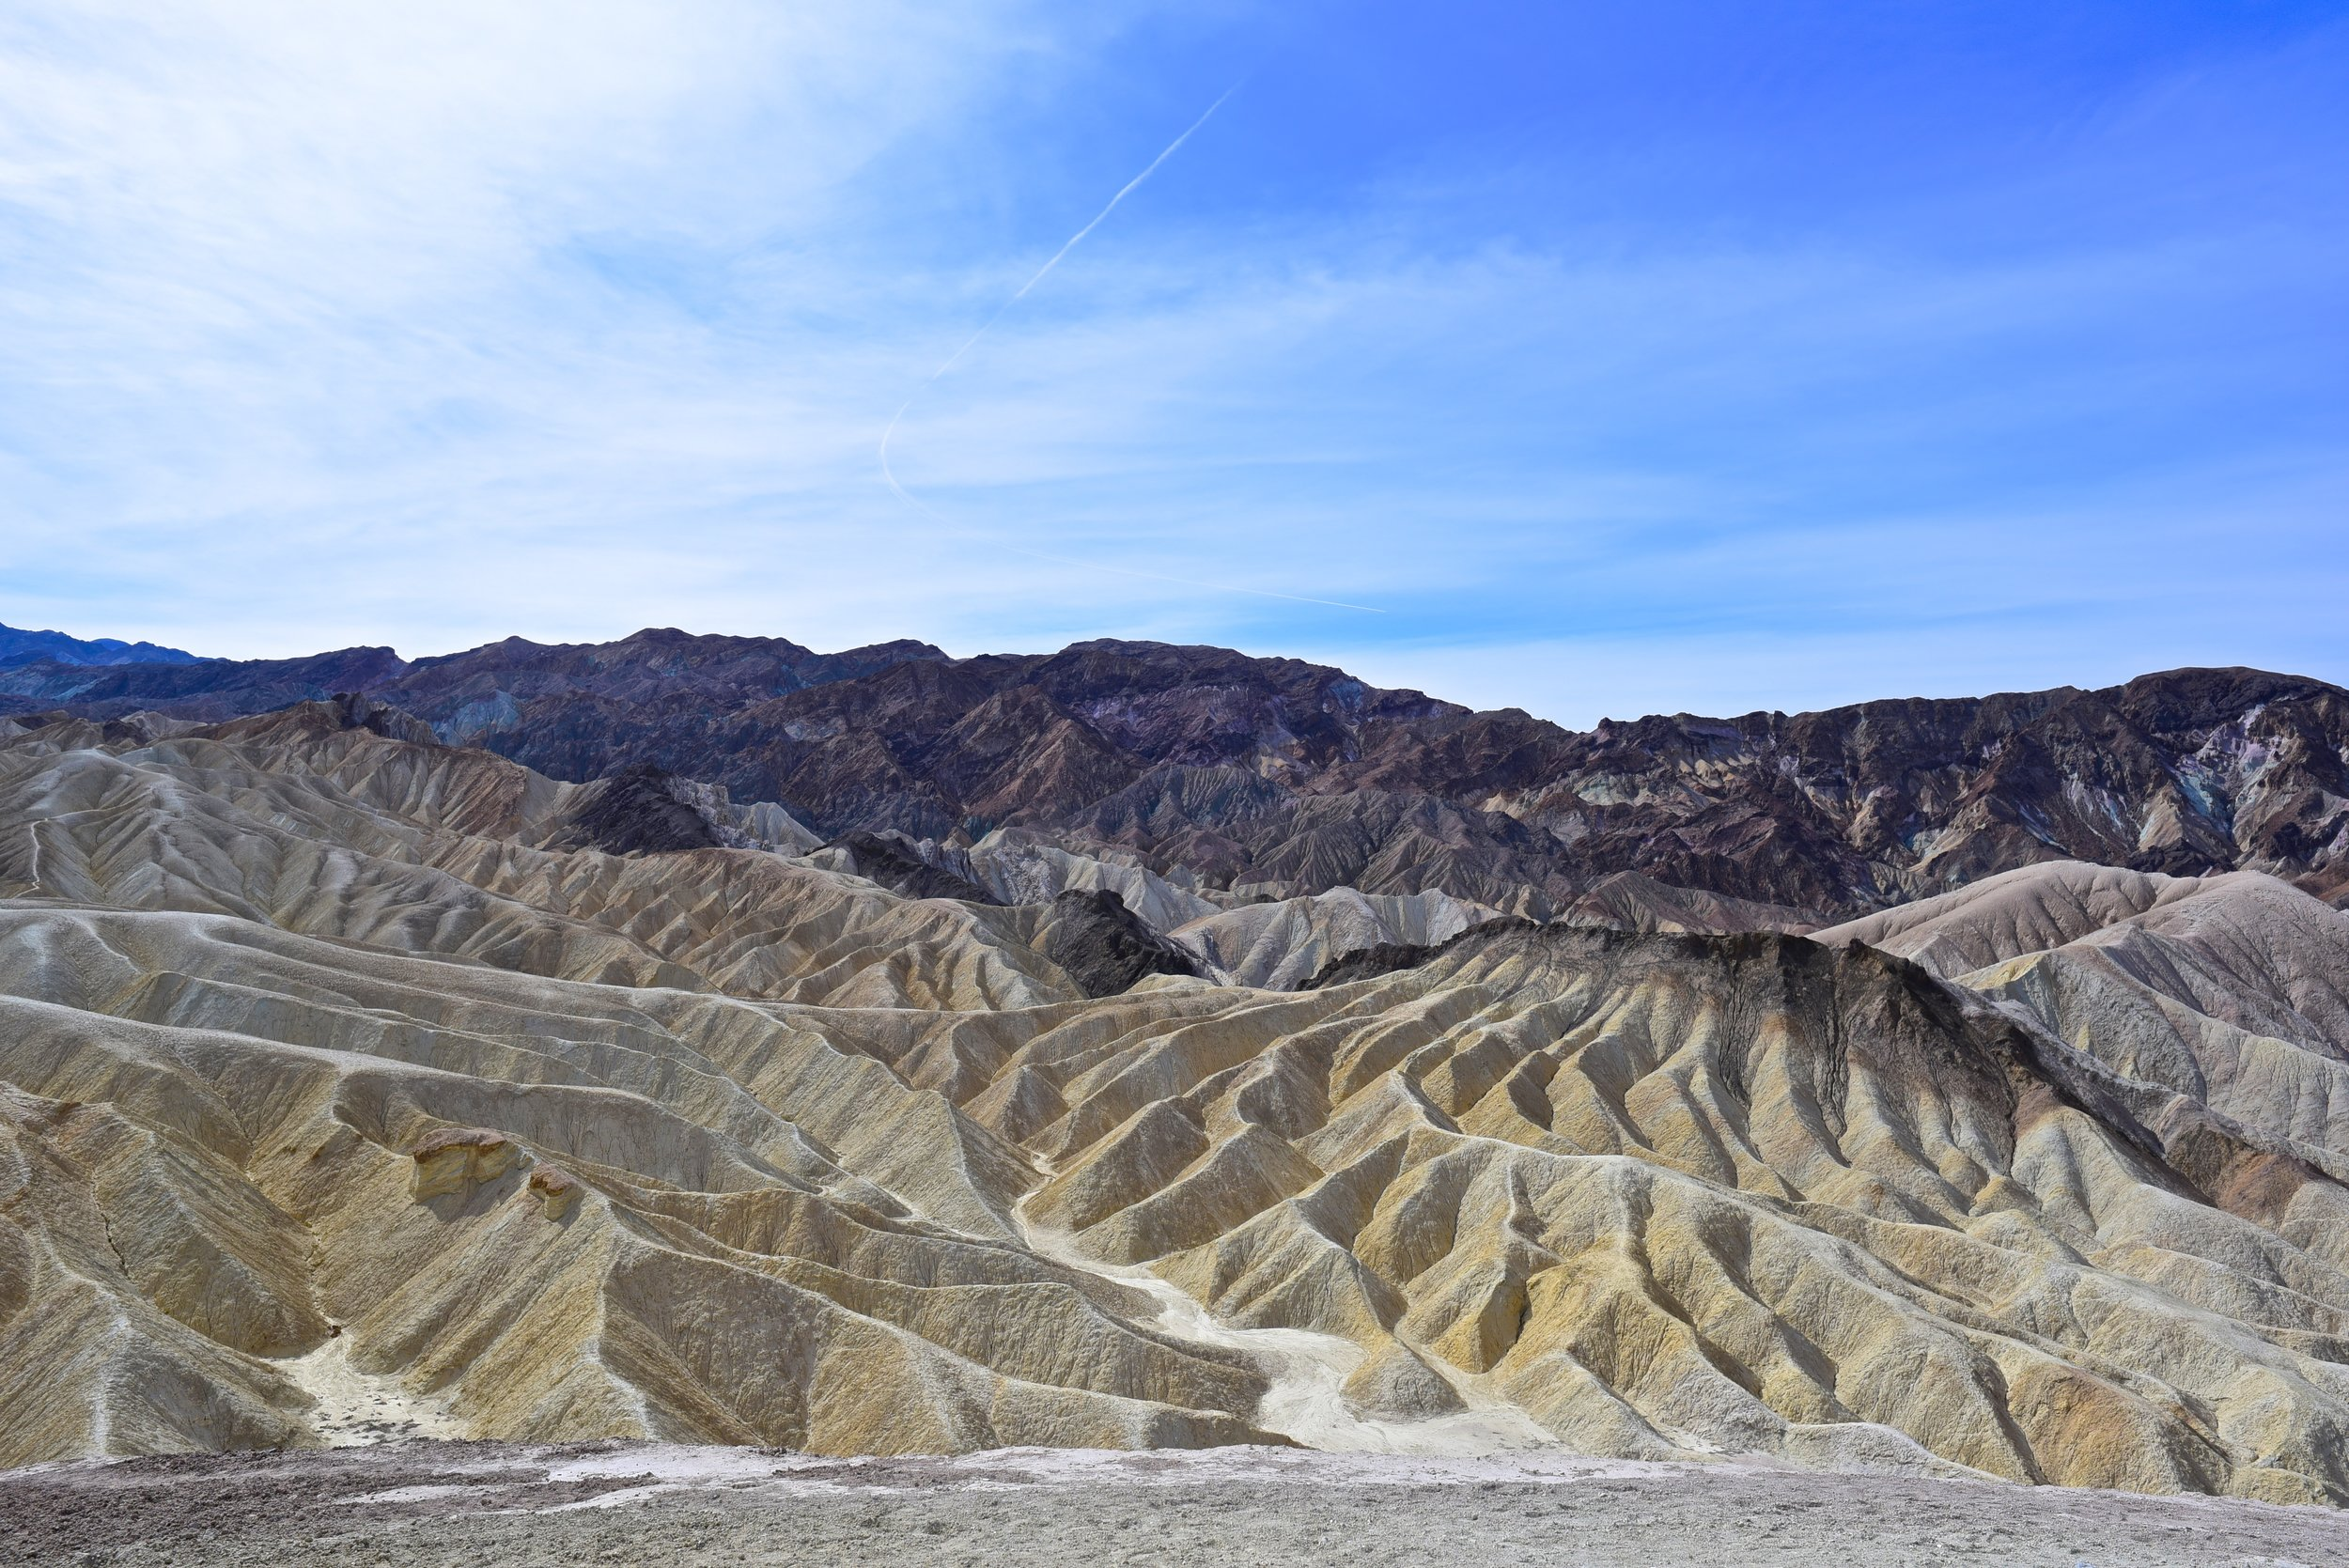 The view from Zabriskie Point in Death Valley